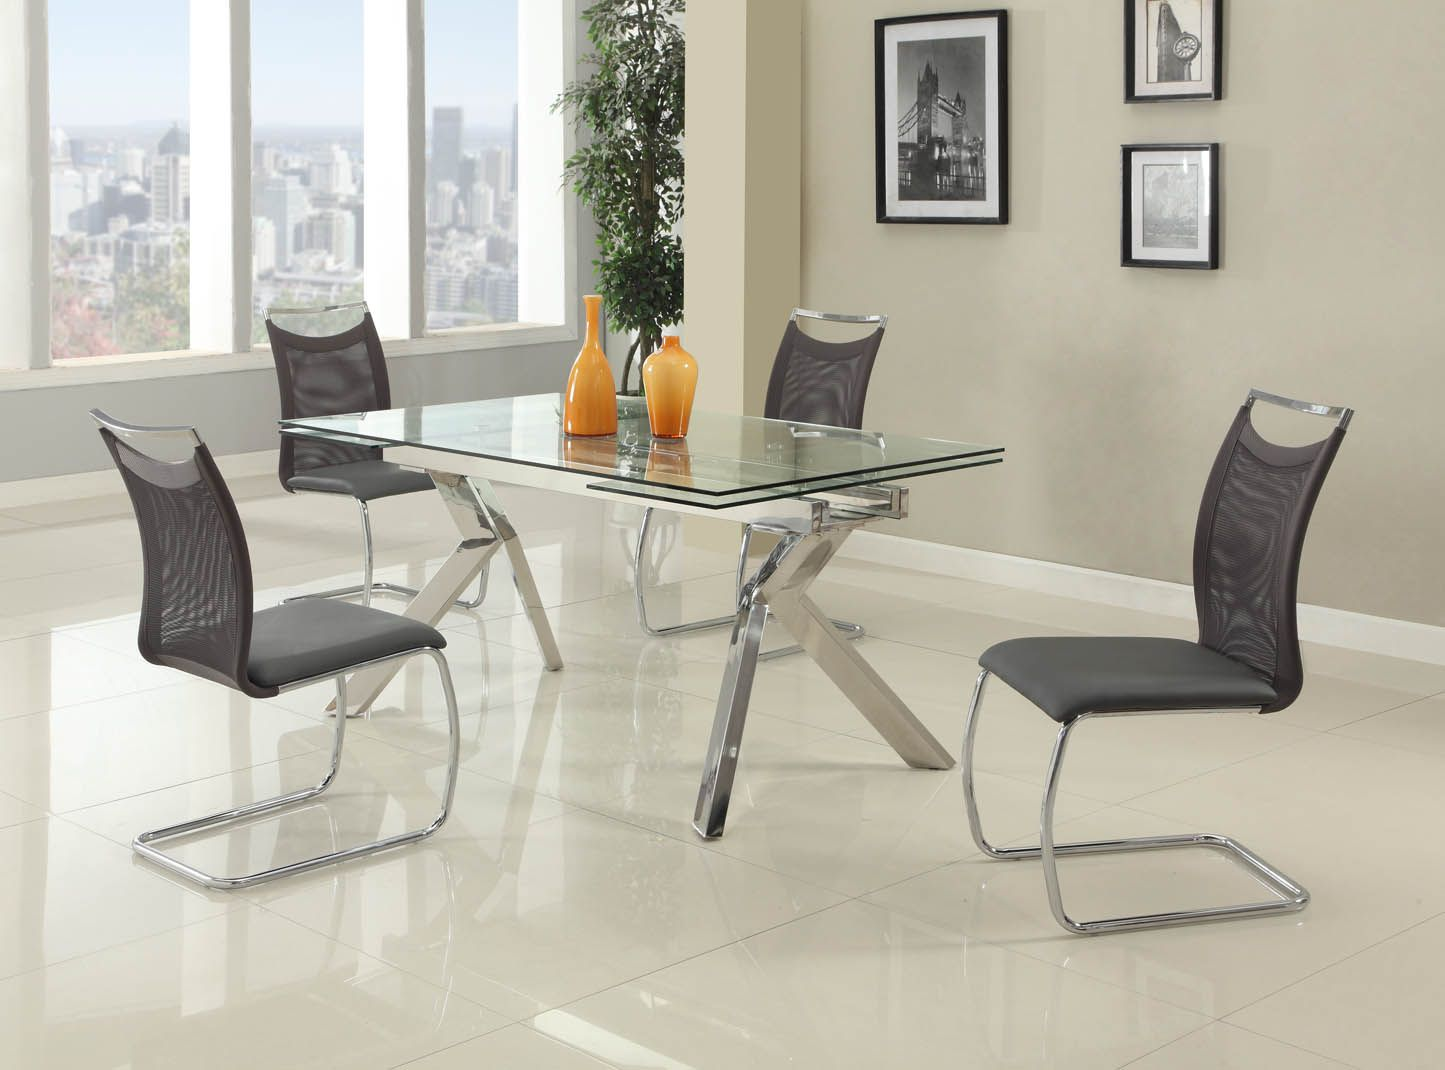 Dining Room Sets Fashionable Rectangular Glass Top Leather Kitchen Dinette Houston Texas Chintaly Ella Nadine